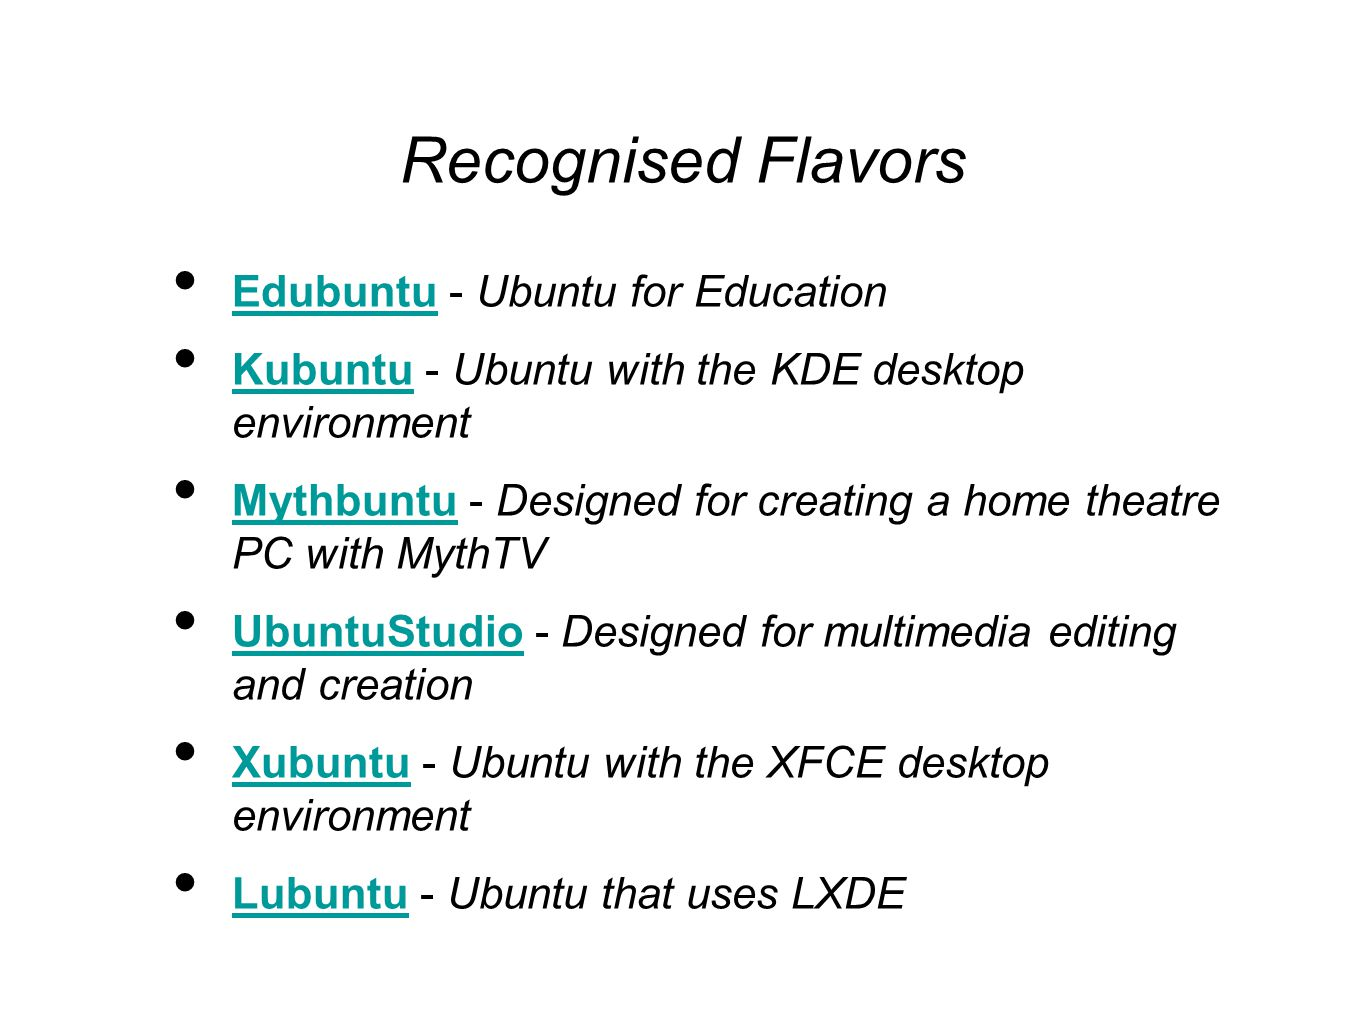 Recognised Flavors Edubuntu - Ubuntu for Education Edubuntu Kubuntu - Ubuntu with the KDE desktop environment Kubuntu Mythbuntu - Designed for creating a home theatre PC with MythTV Mythbuntu UbuntuStudio - Designed for multimedia editing and creation UbuntuStudio Xubuntu - Ubuntu with the XFCE desktop environment Xubuntu Lubuntu - Ubuntu that uses LXDE Lubuntu